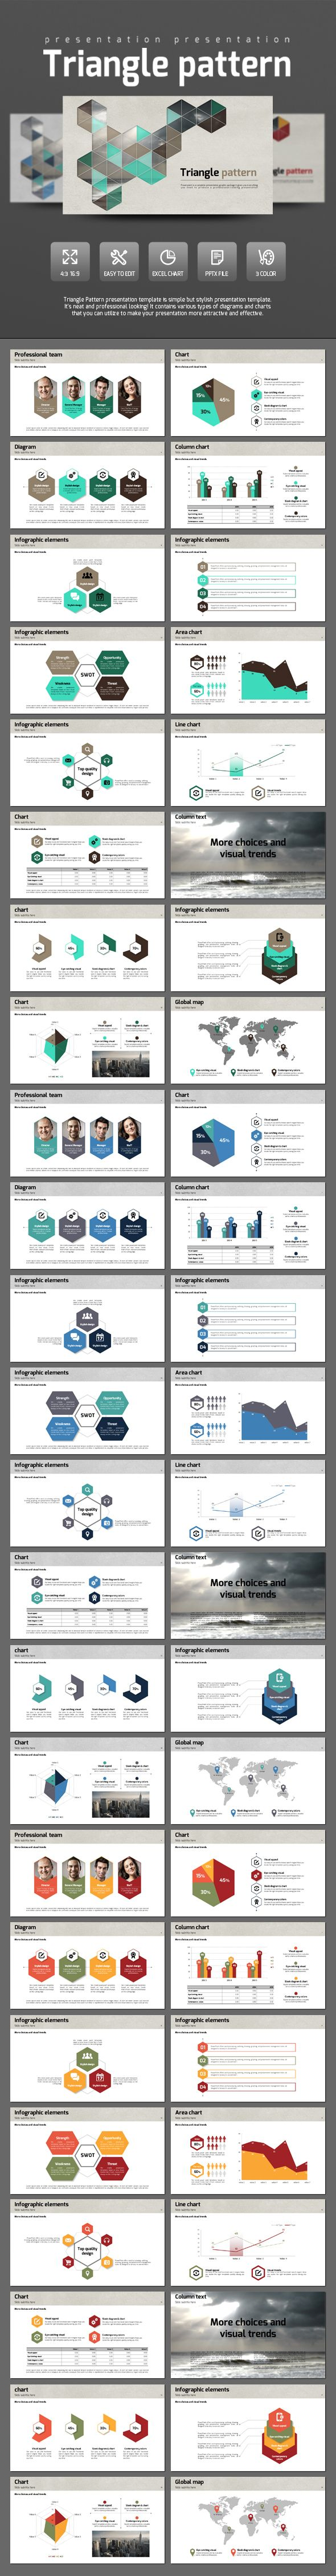 82 best PPT images on Pinterest | Business powerpoint templates ...